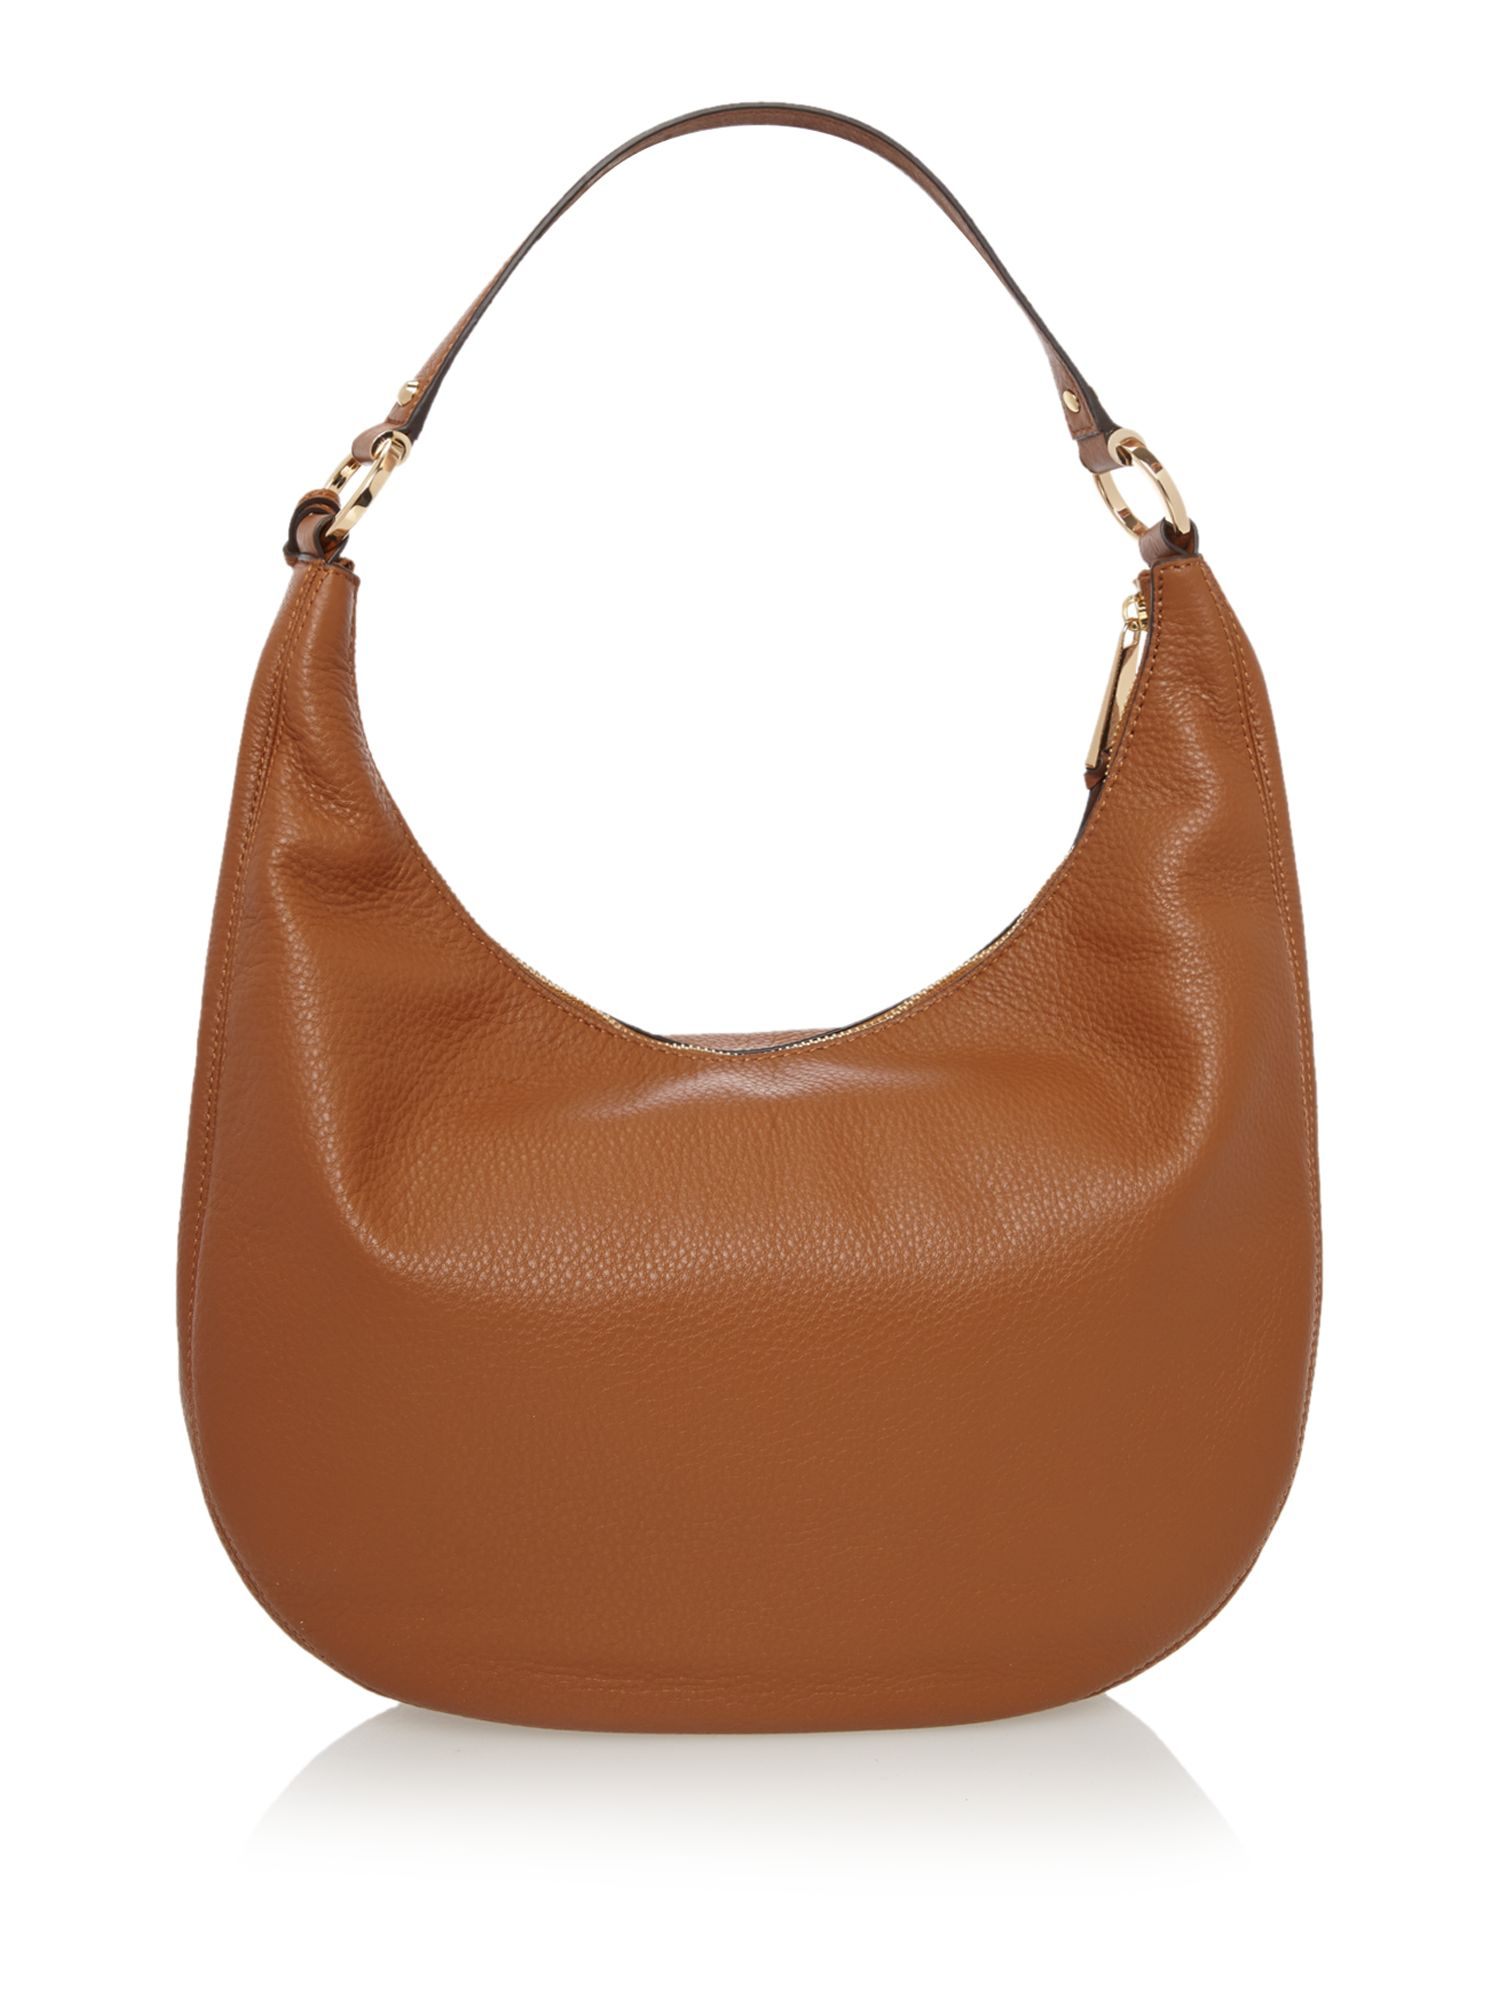 michael kors rhea zip tan shoulder hobo bag in brown tan lyst. Black Bedroom Furniture Sets. Home Design Ideas